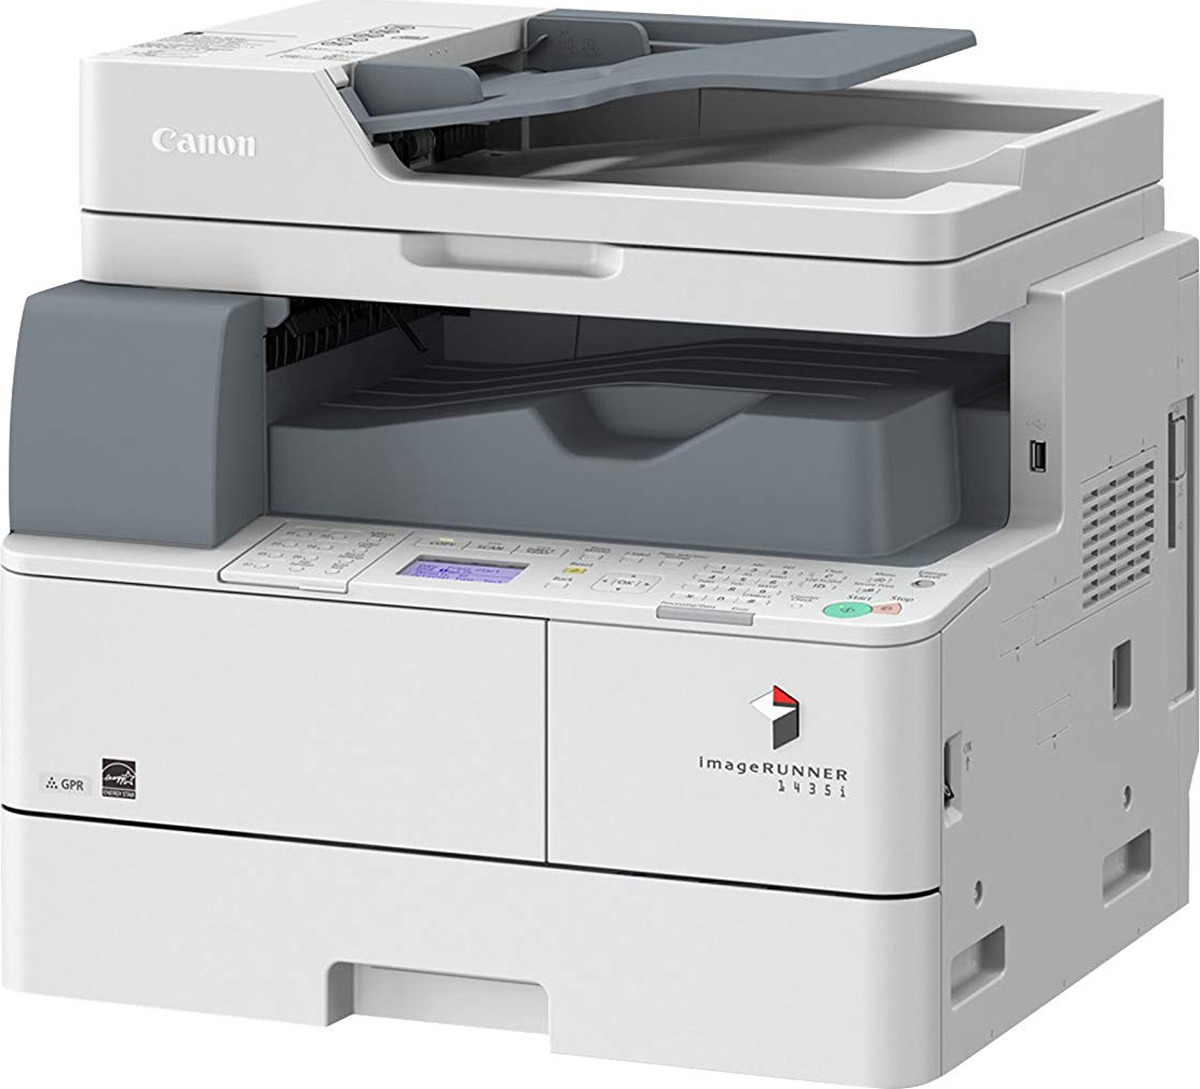 Копир Canon imageRUNNER 1435i MFP, 9506B004